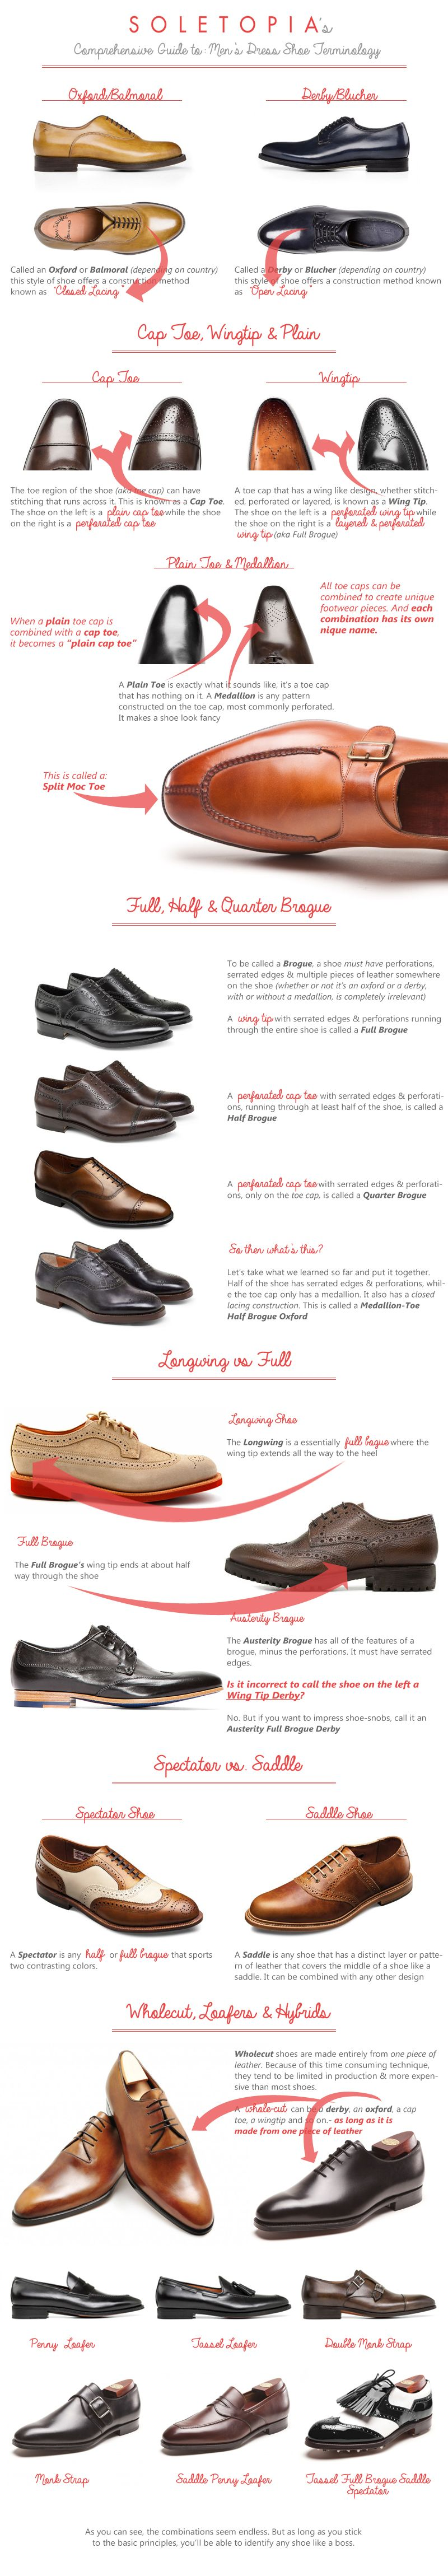 Everything you need to know about men's shoes